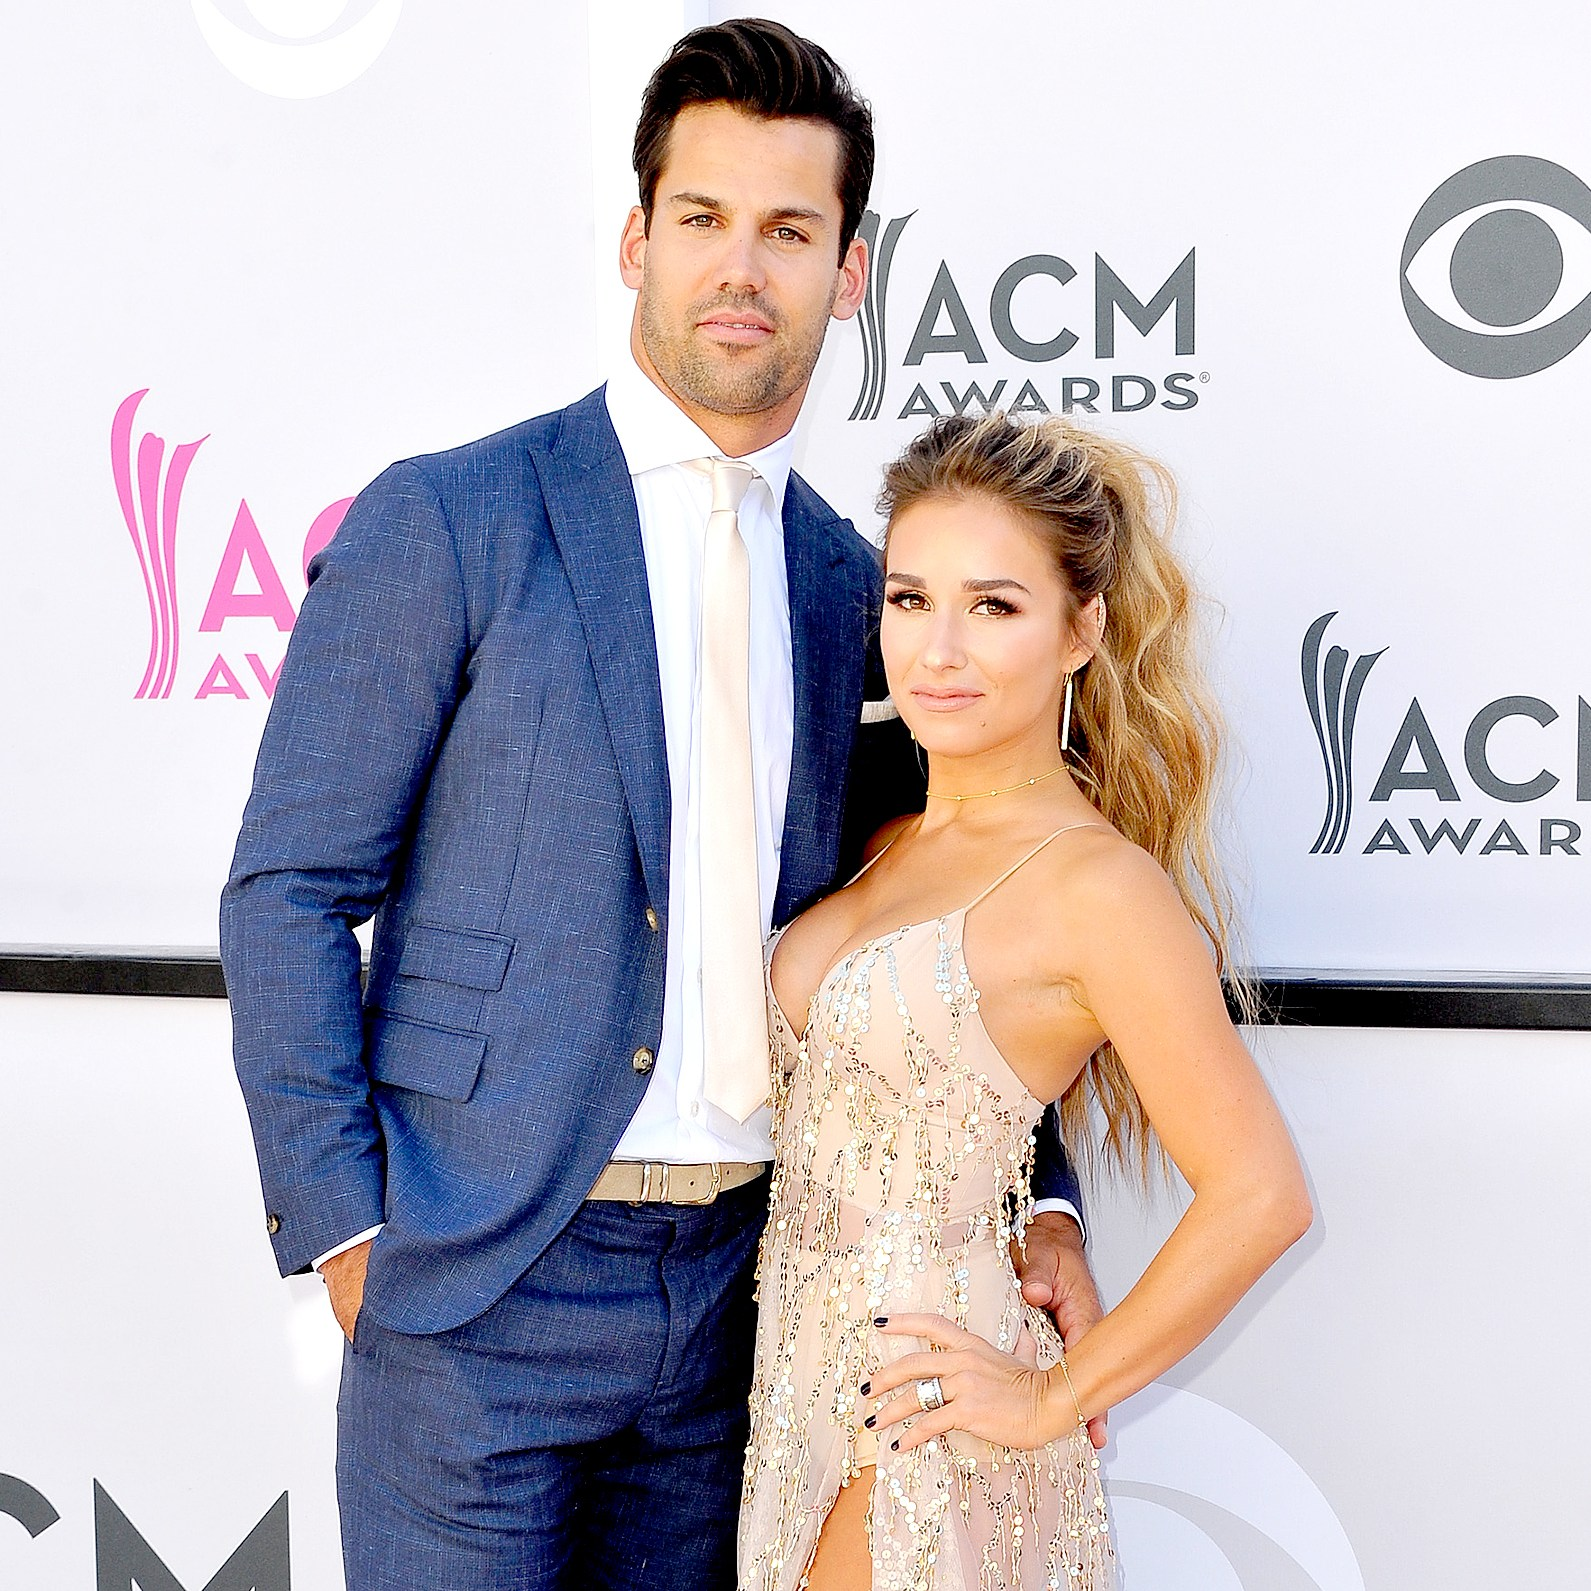 Eric Decker and Jessie James Decker arrive at the 52nd Academy Of Country Music Awards on April 2, 2017 in Las Vegas, Nevada.